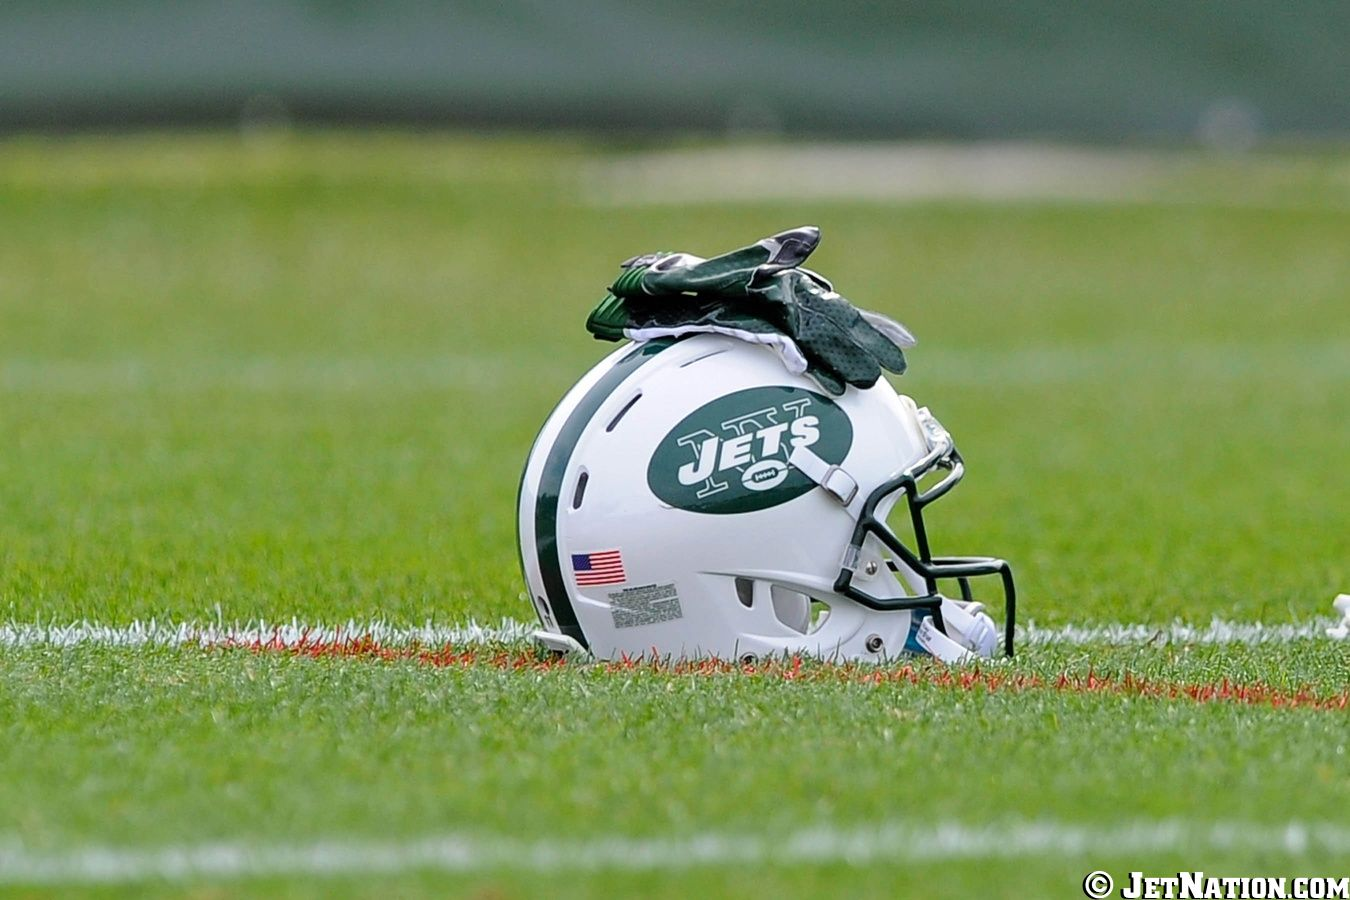 DeFilippo Rumored to be Jets Target for OC Position